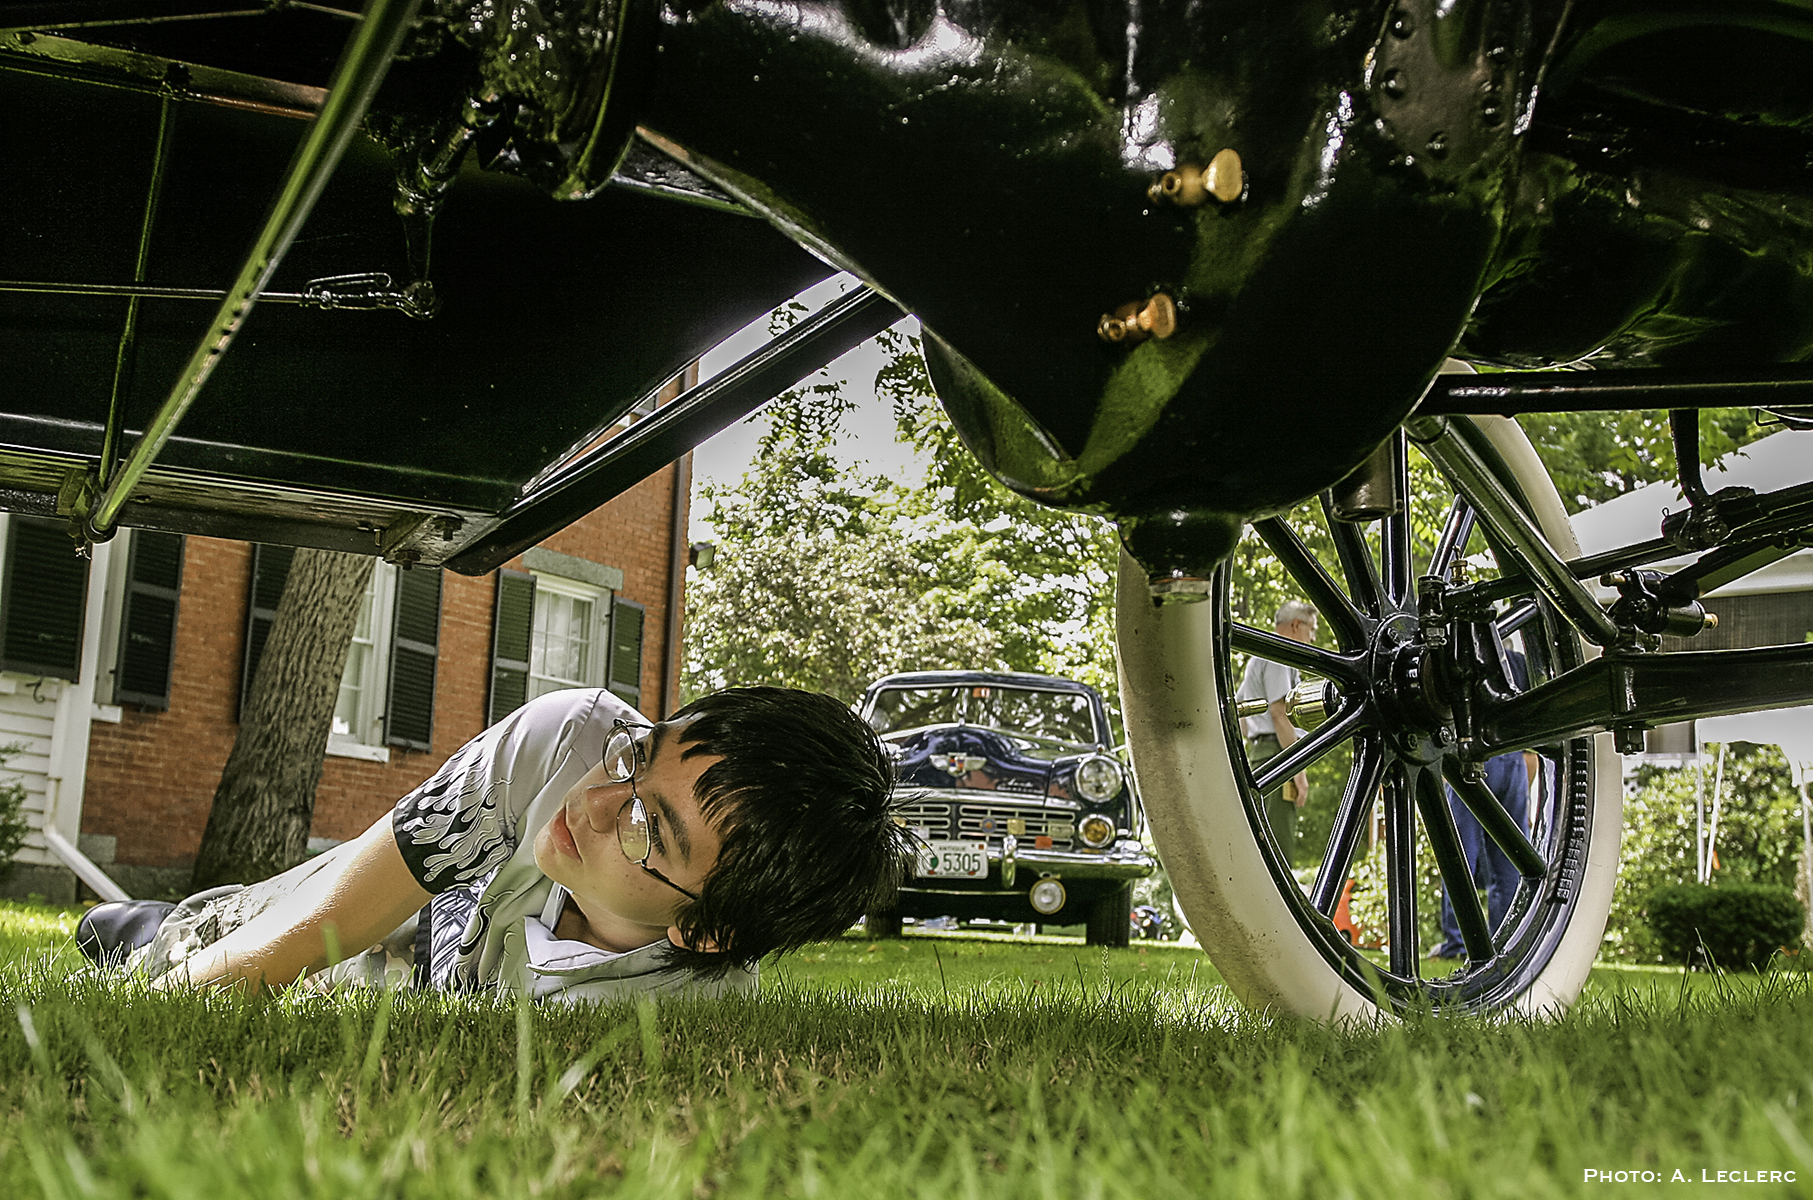 Aaron Leclerc/Staff photographerBrandon Rydell of Dover takes a look at the underside of a 1910 Ford Model T during Sundays' Antique/Classic Car show at the Woodman Institue Museum in Dover.